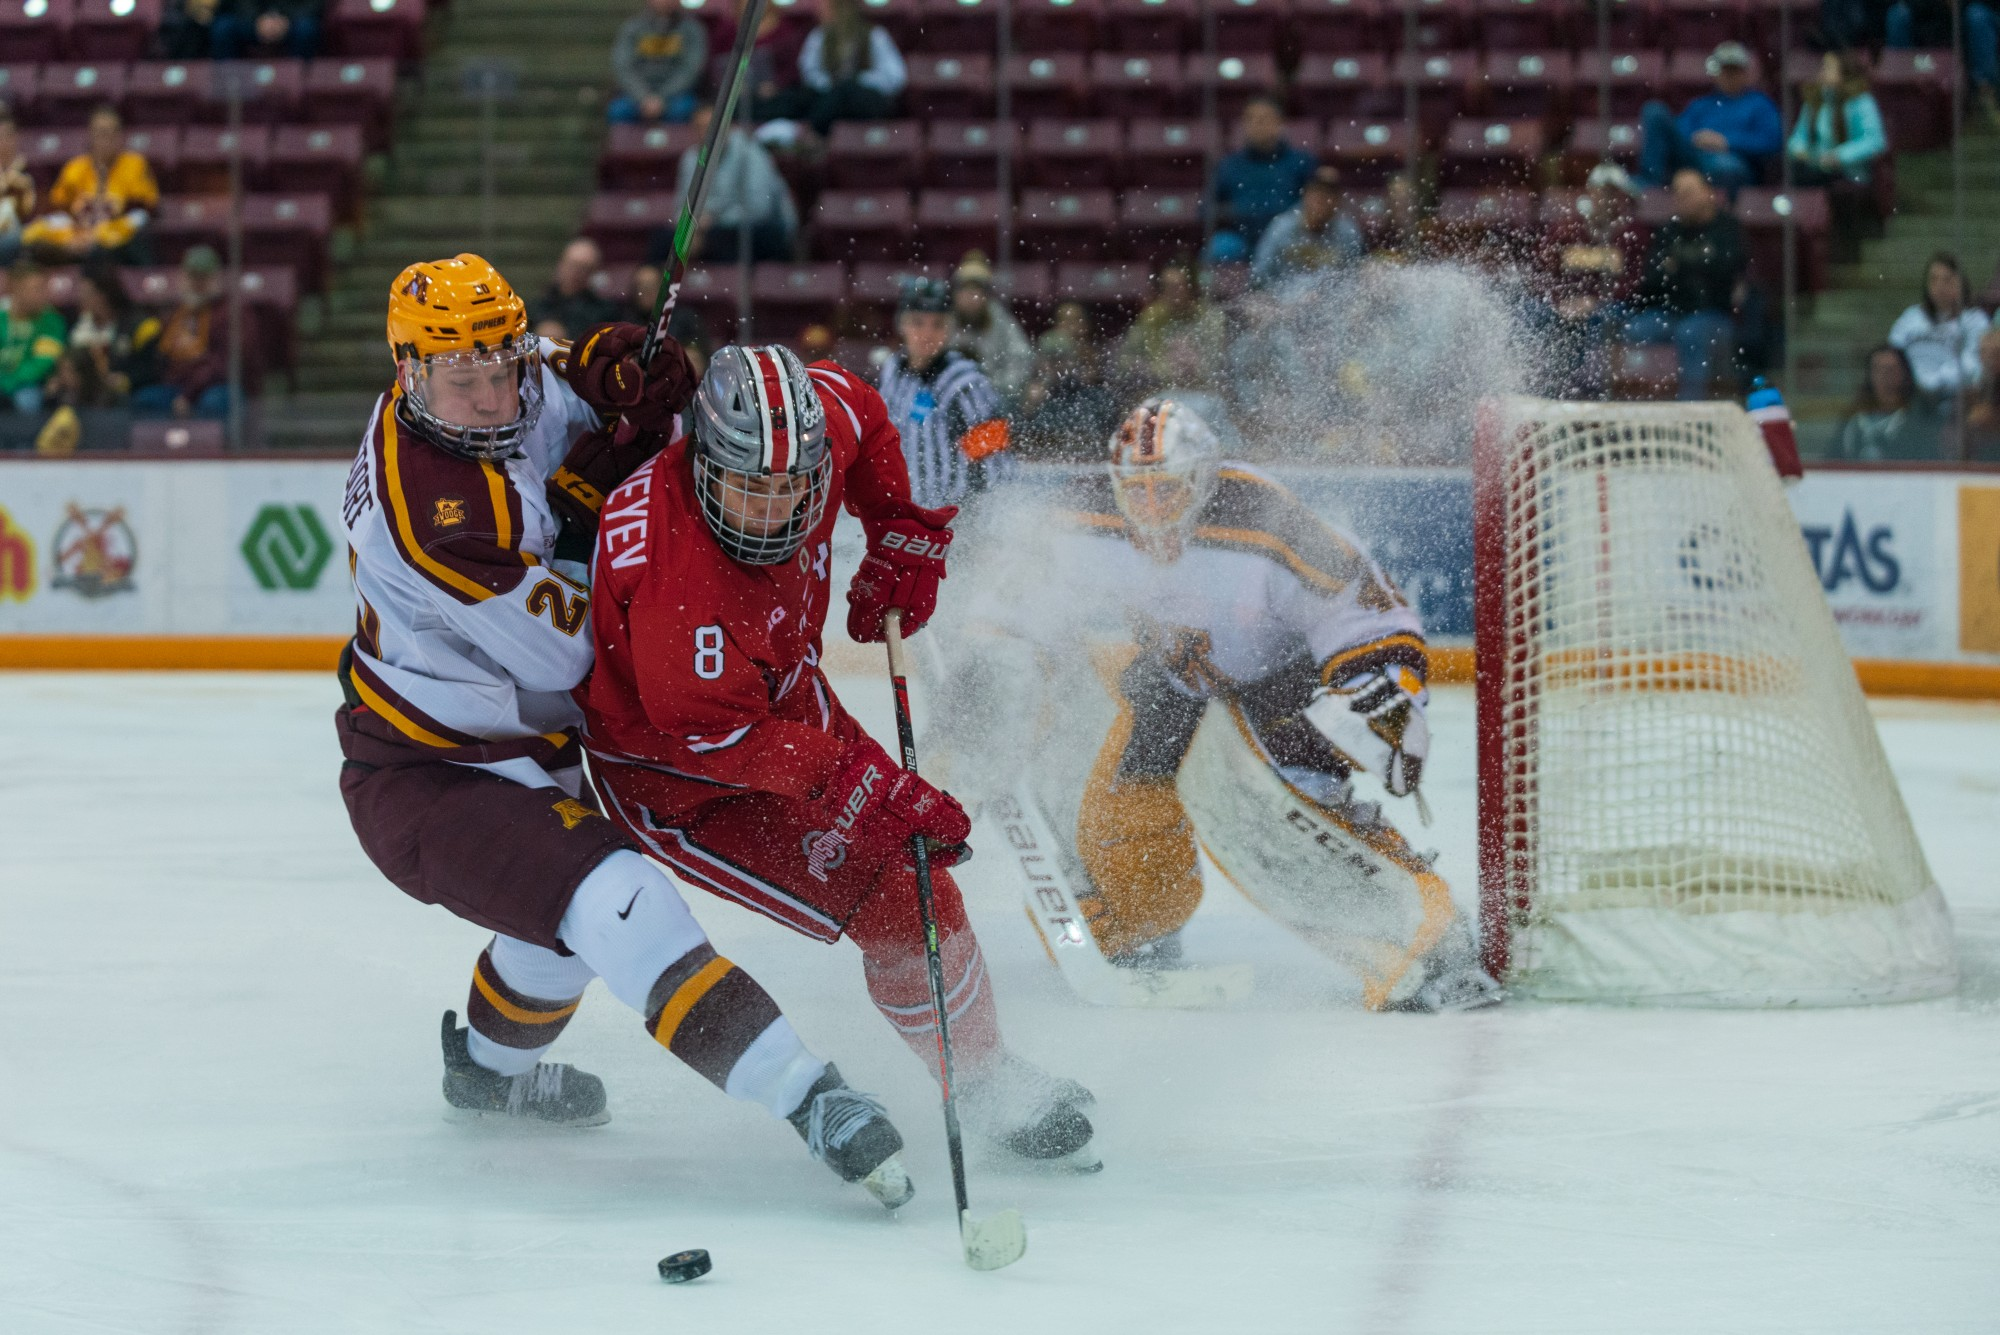 Gophers Defenseman Ryan Zuhlsdorf collides with an Ohio State player at 3M Arena at Mariucci on Friday, Jan. 24, 2020. The Gophers ended the night with a 6-3 victory over Ohio State.